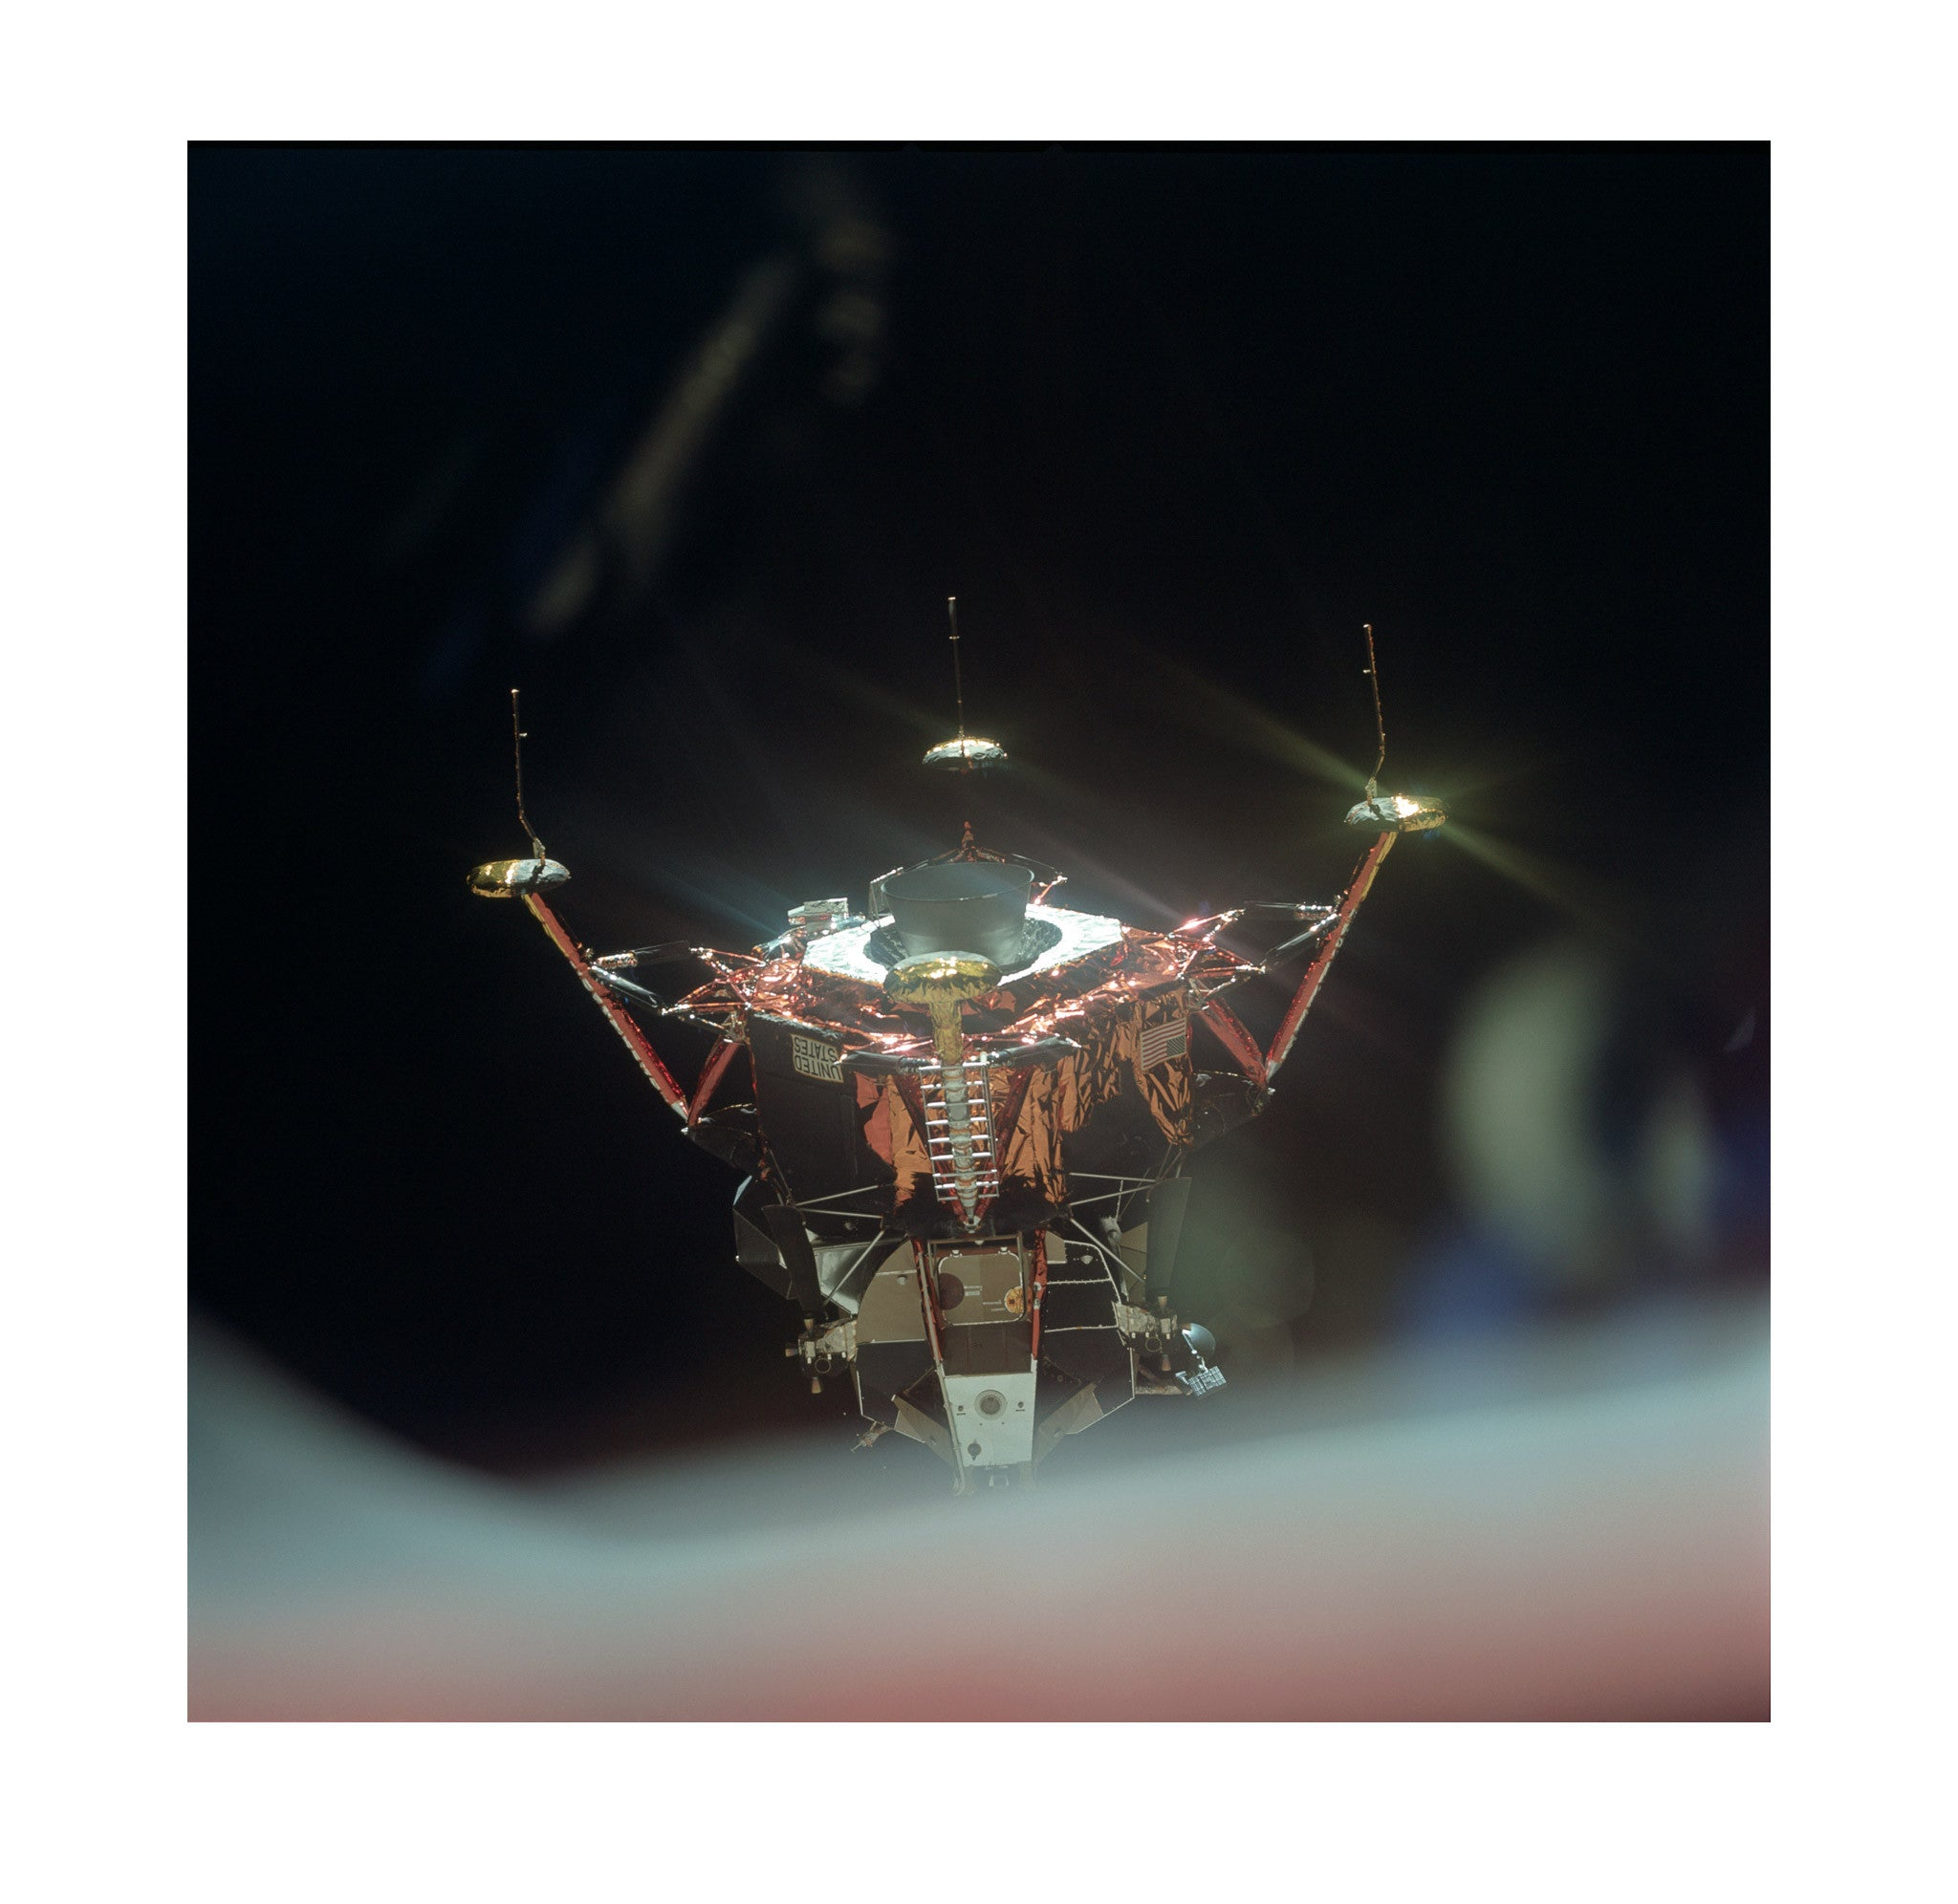 Apollo 11 – Lunar Module